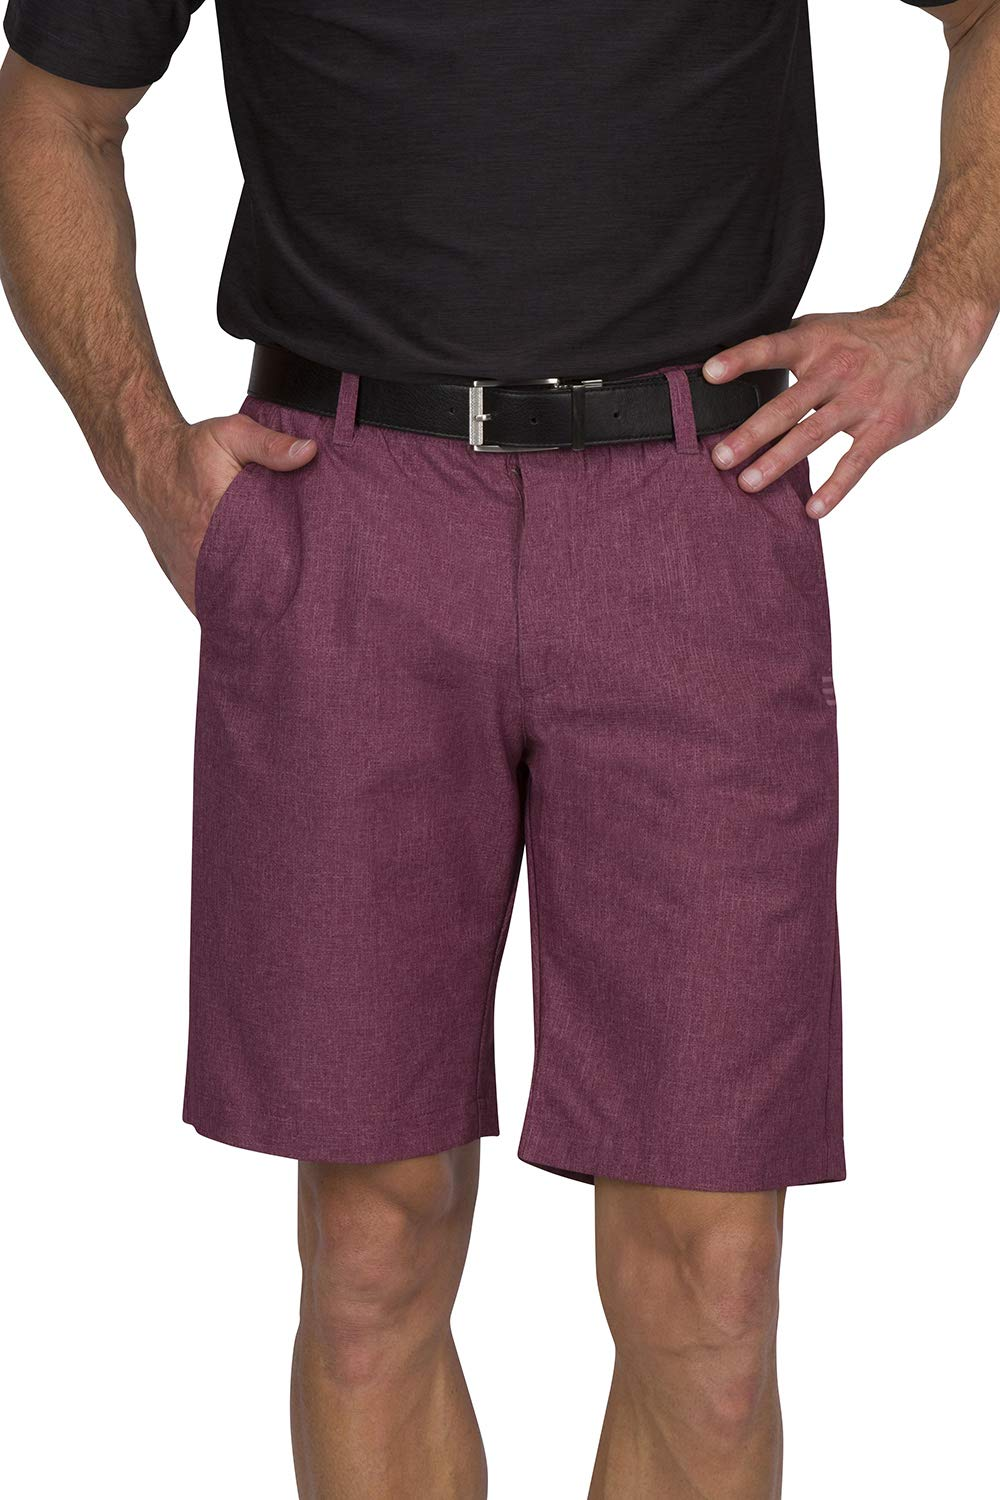 Dry Fit Golf Shorts for Men - Casual Mens Shorts Moisture Wicking - Men's Chino Shorts with Elastic Waistband Maroon by Three Sixty Six